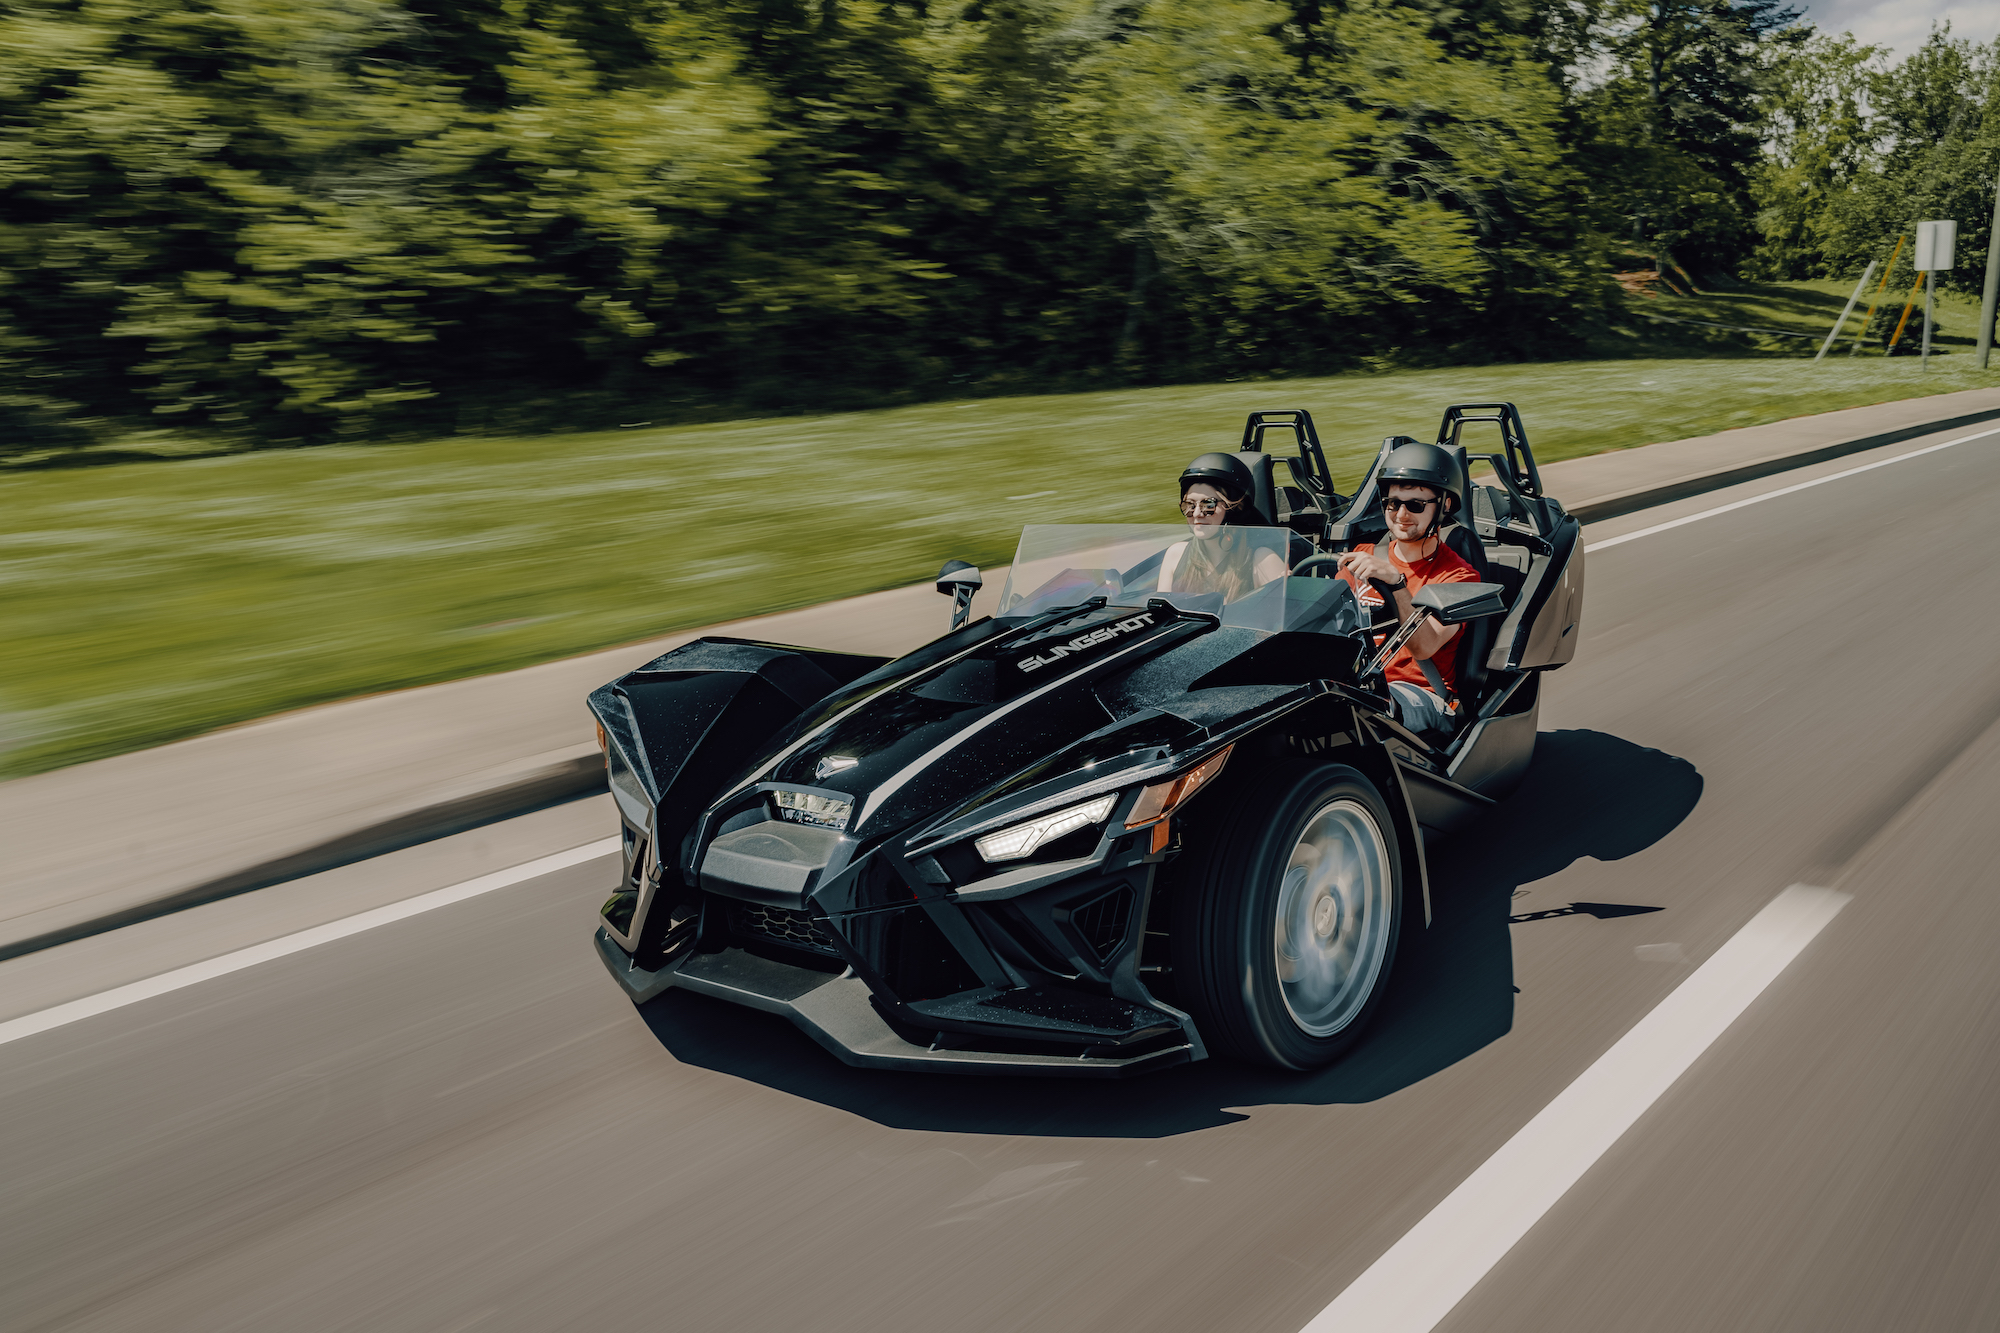 Polaris Slingshot driving down the road - Polaris Slingshots are available as rentals at the Mountain Mile Mall at Mountain Mile Adventures in Pigeon Forge, Tennessee